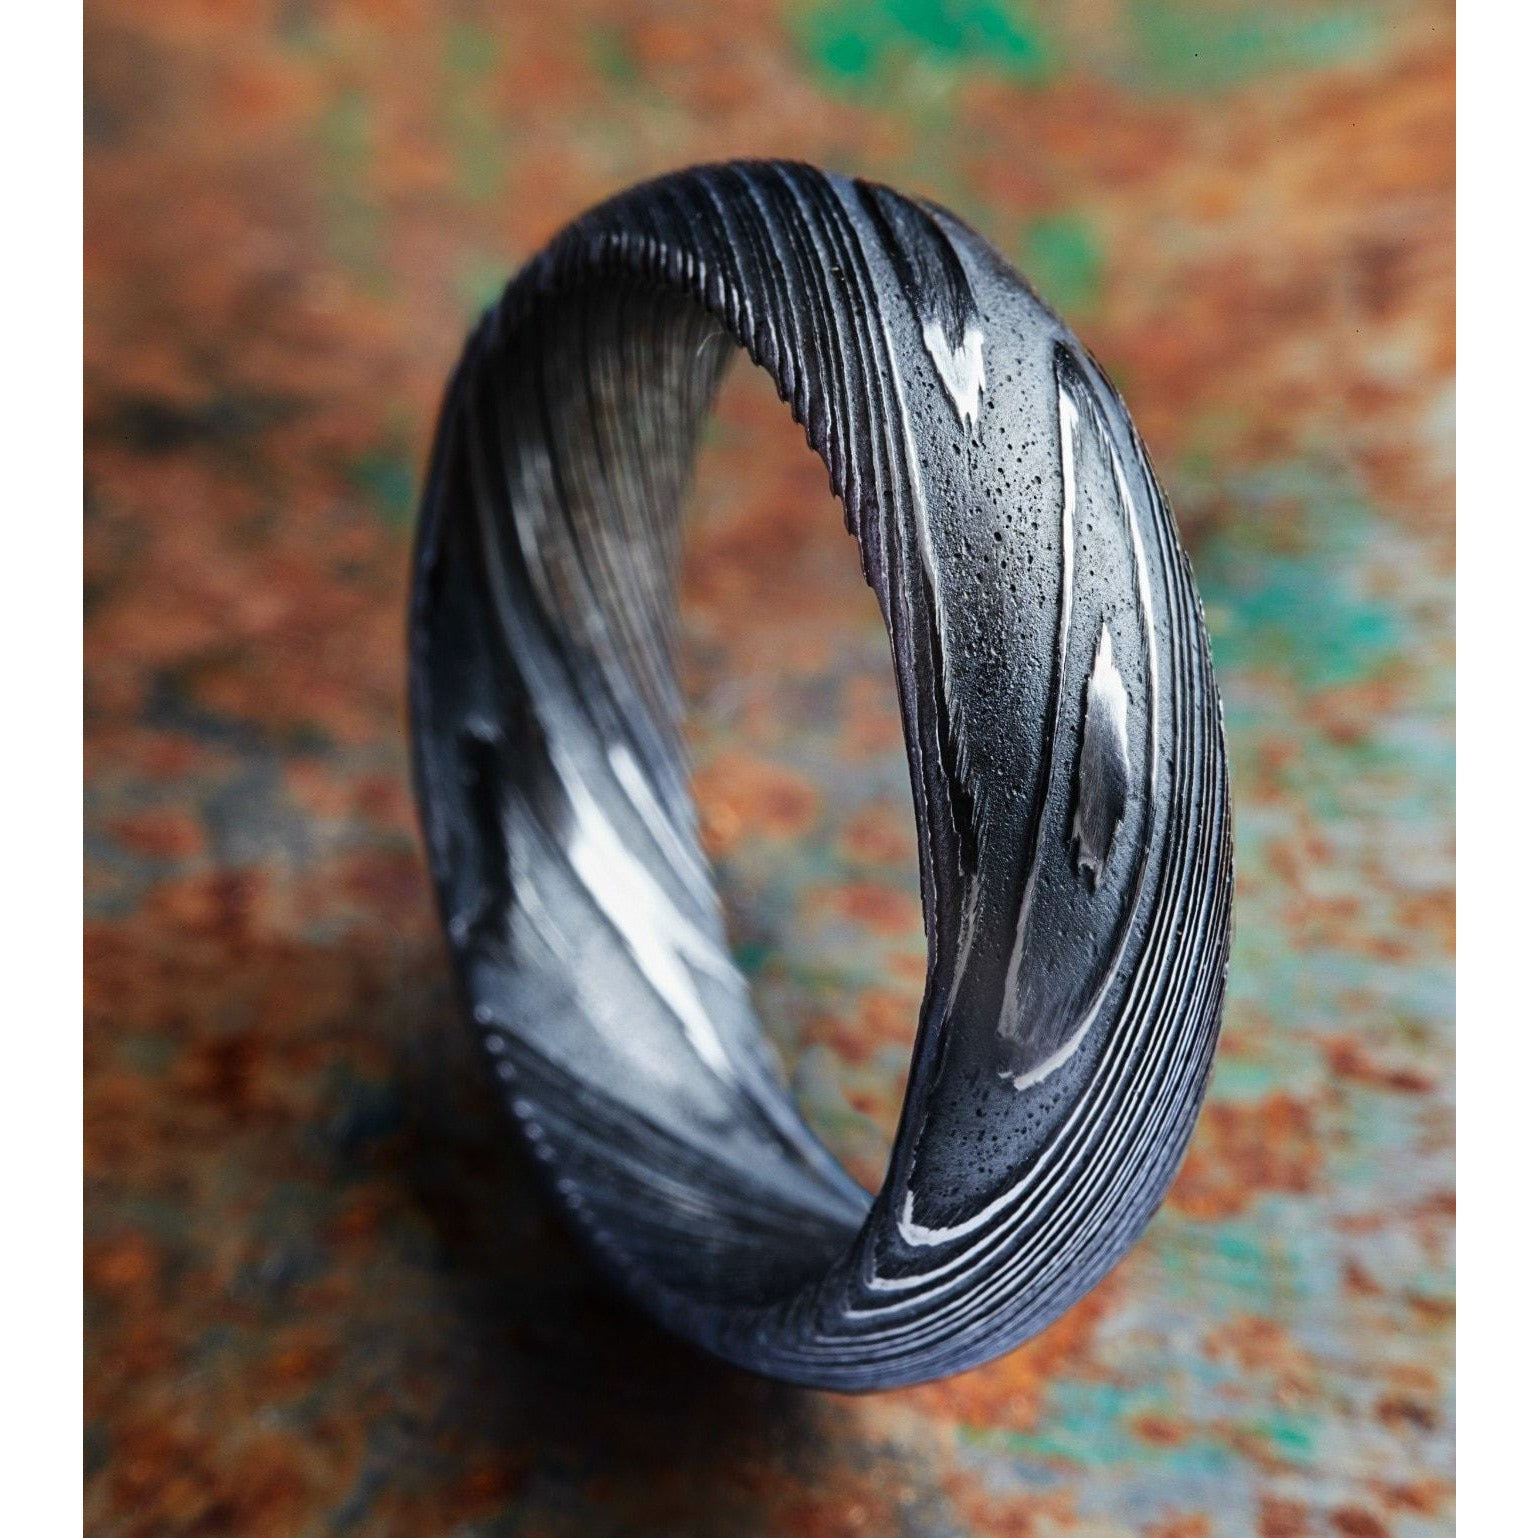 driftwood wood grain damascus steel ring mens wedding band - Damascus Wedding Ring